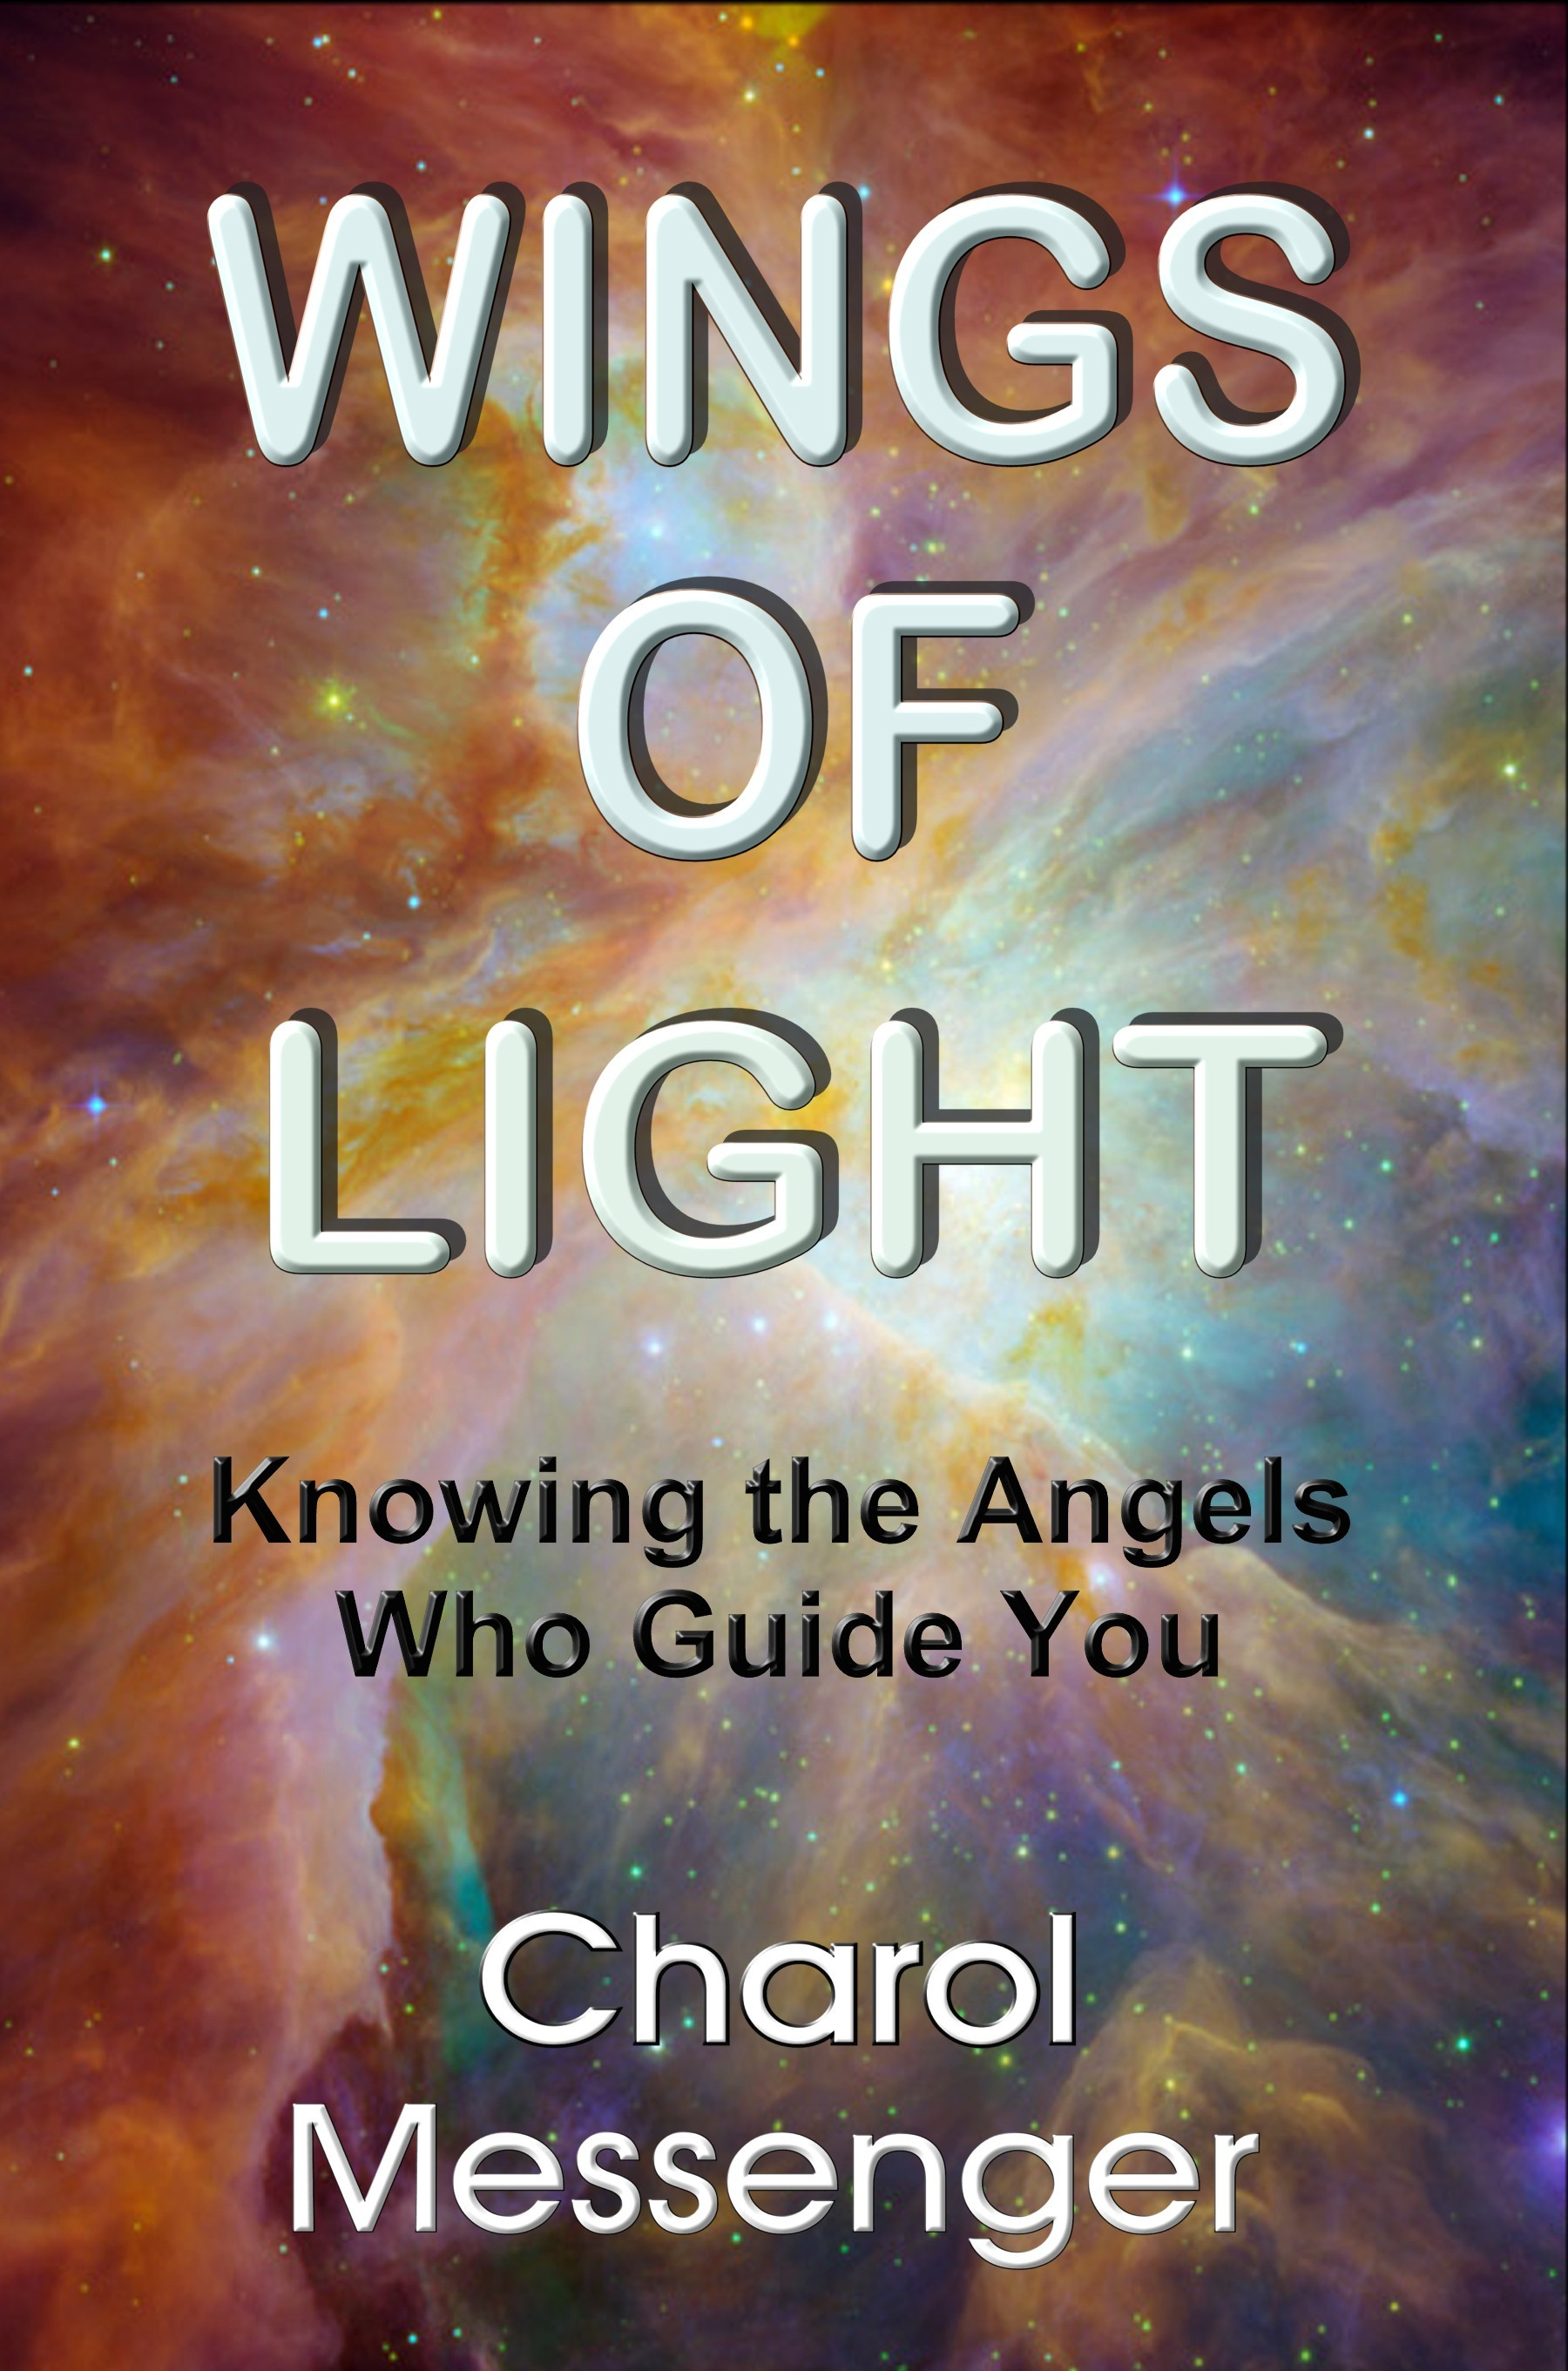 Wings of Light: Knowing the Angels Who Guide You By: Charol Messenger